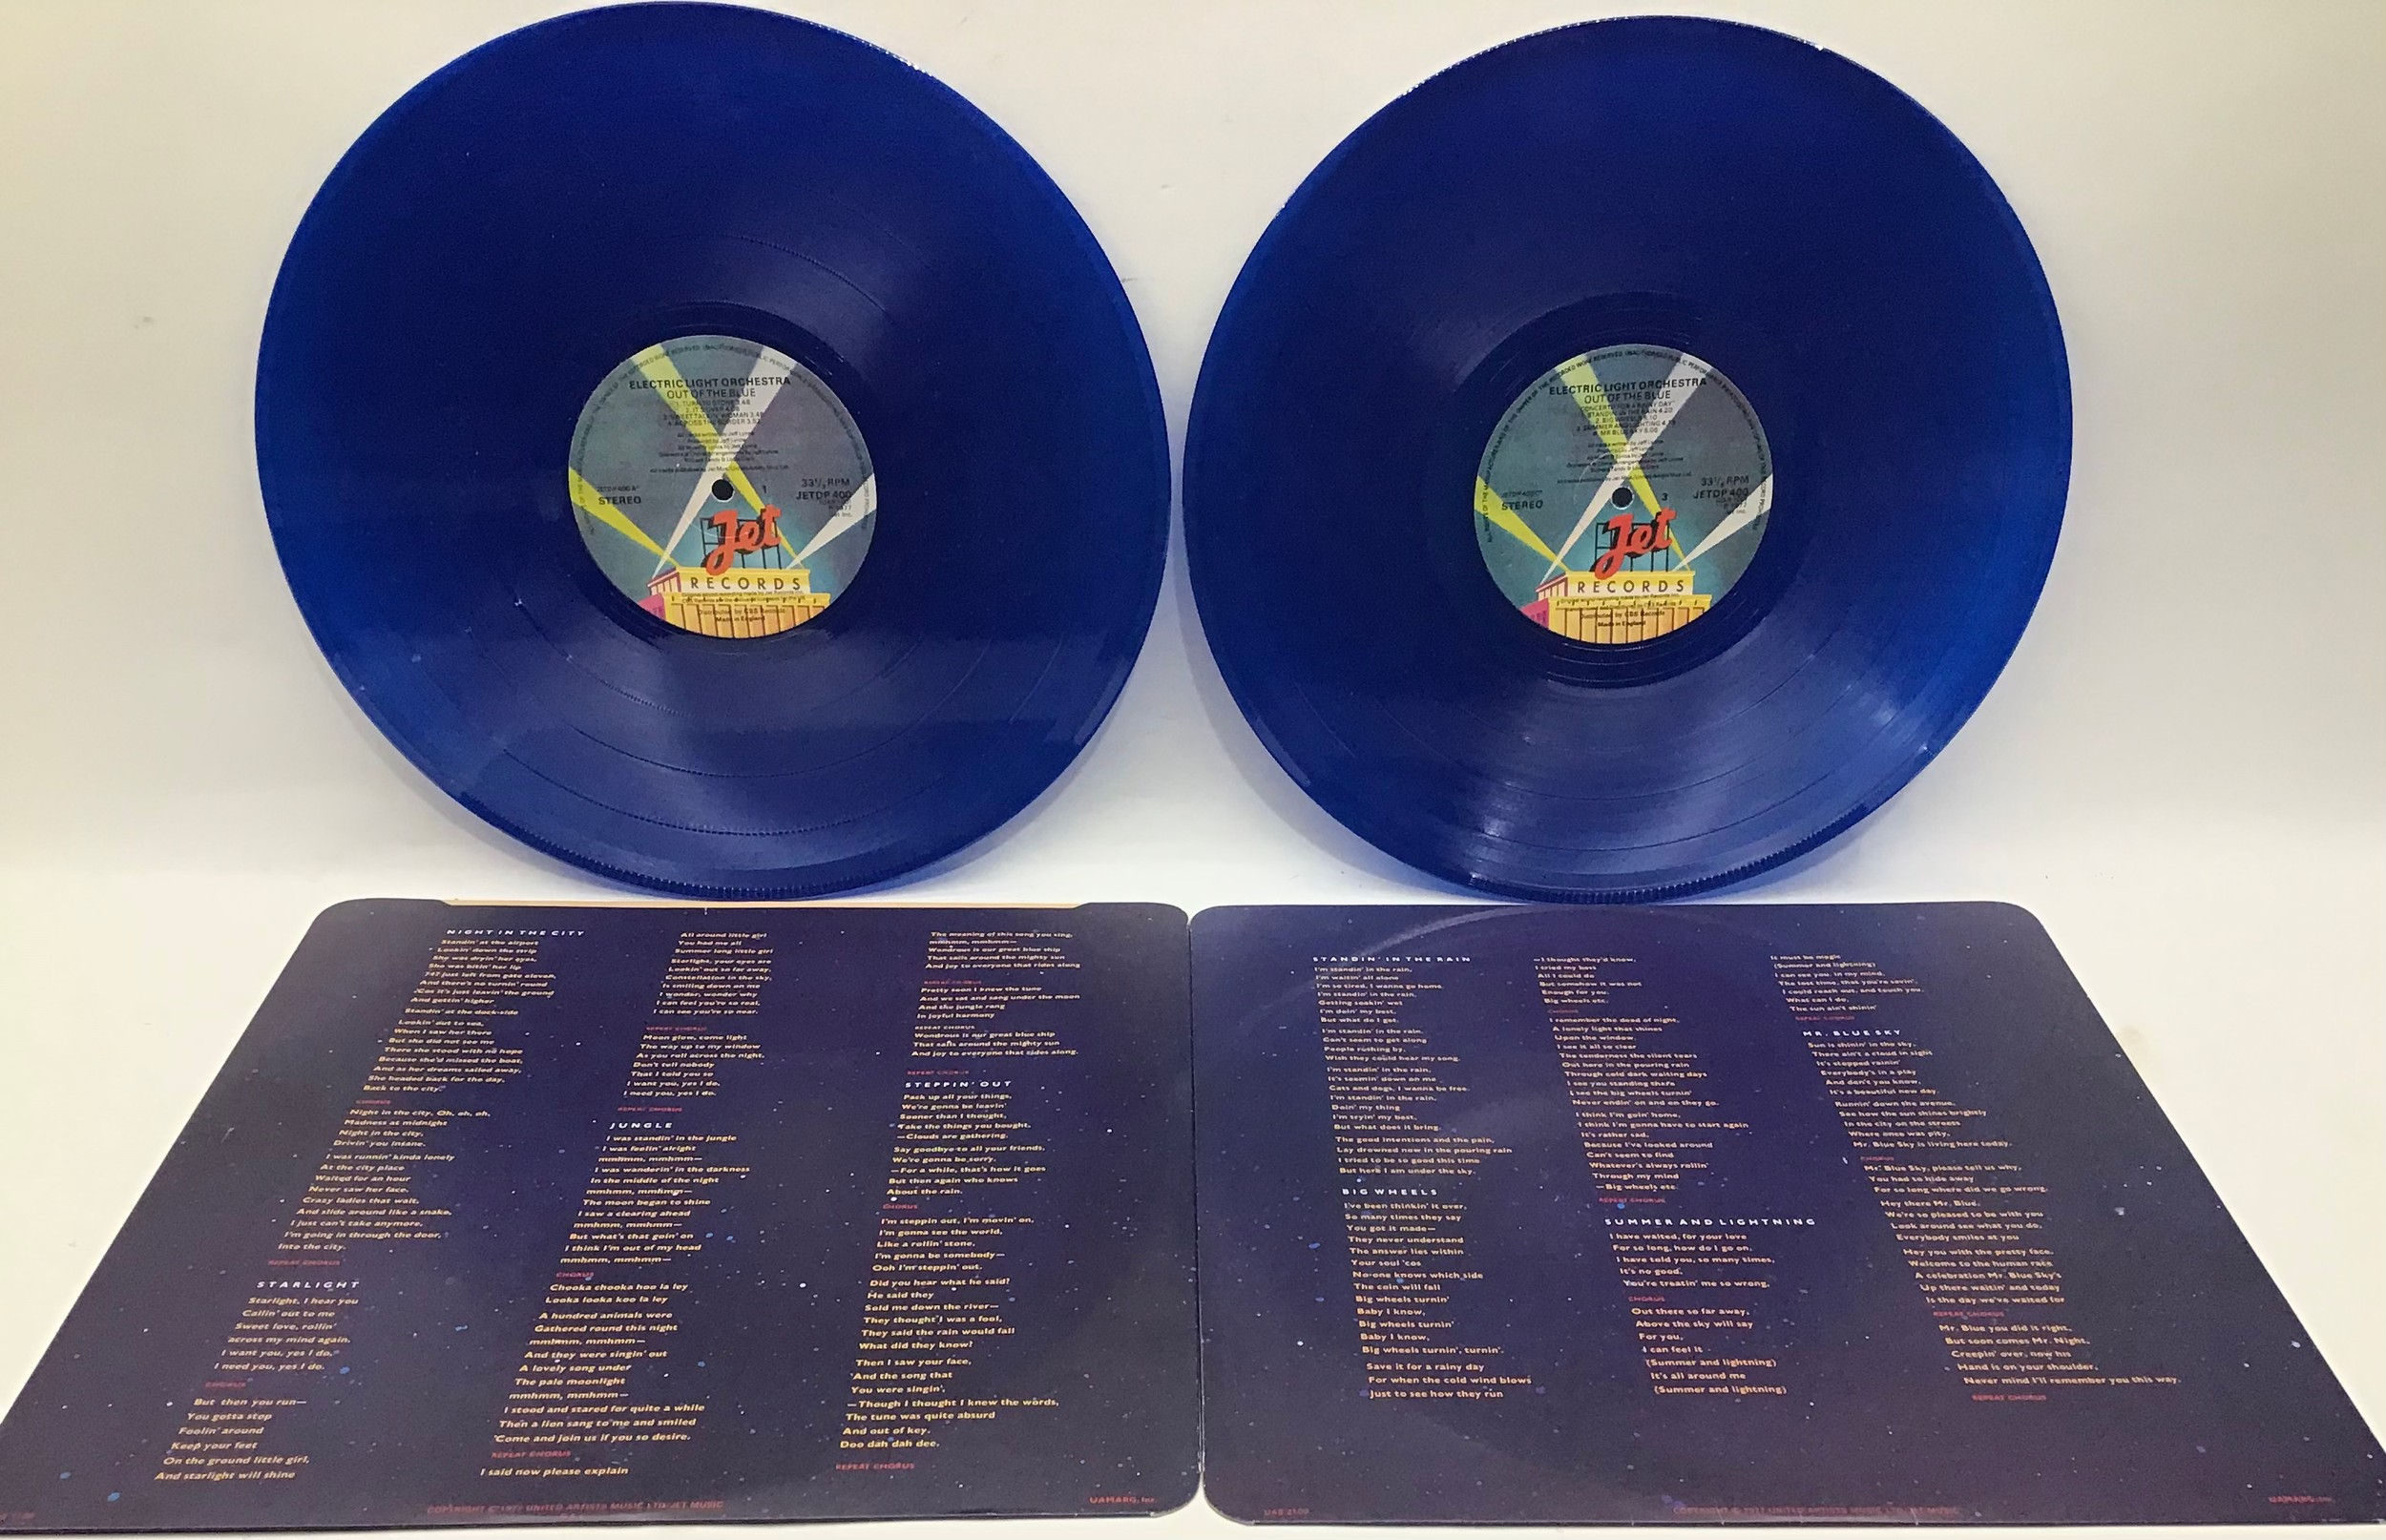 ELECTRIC LIGHT ORCHESTRA (ELO) 'Out Of The Blue' Blue Vinyl LP. This is a 1977 Release Cat No. JETDP - Image 3 of 3